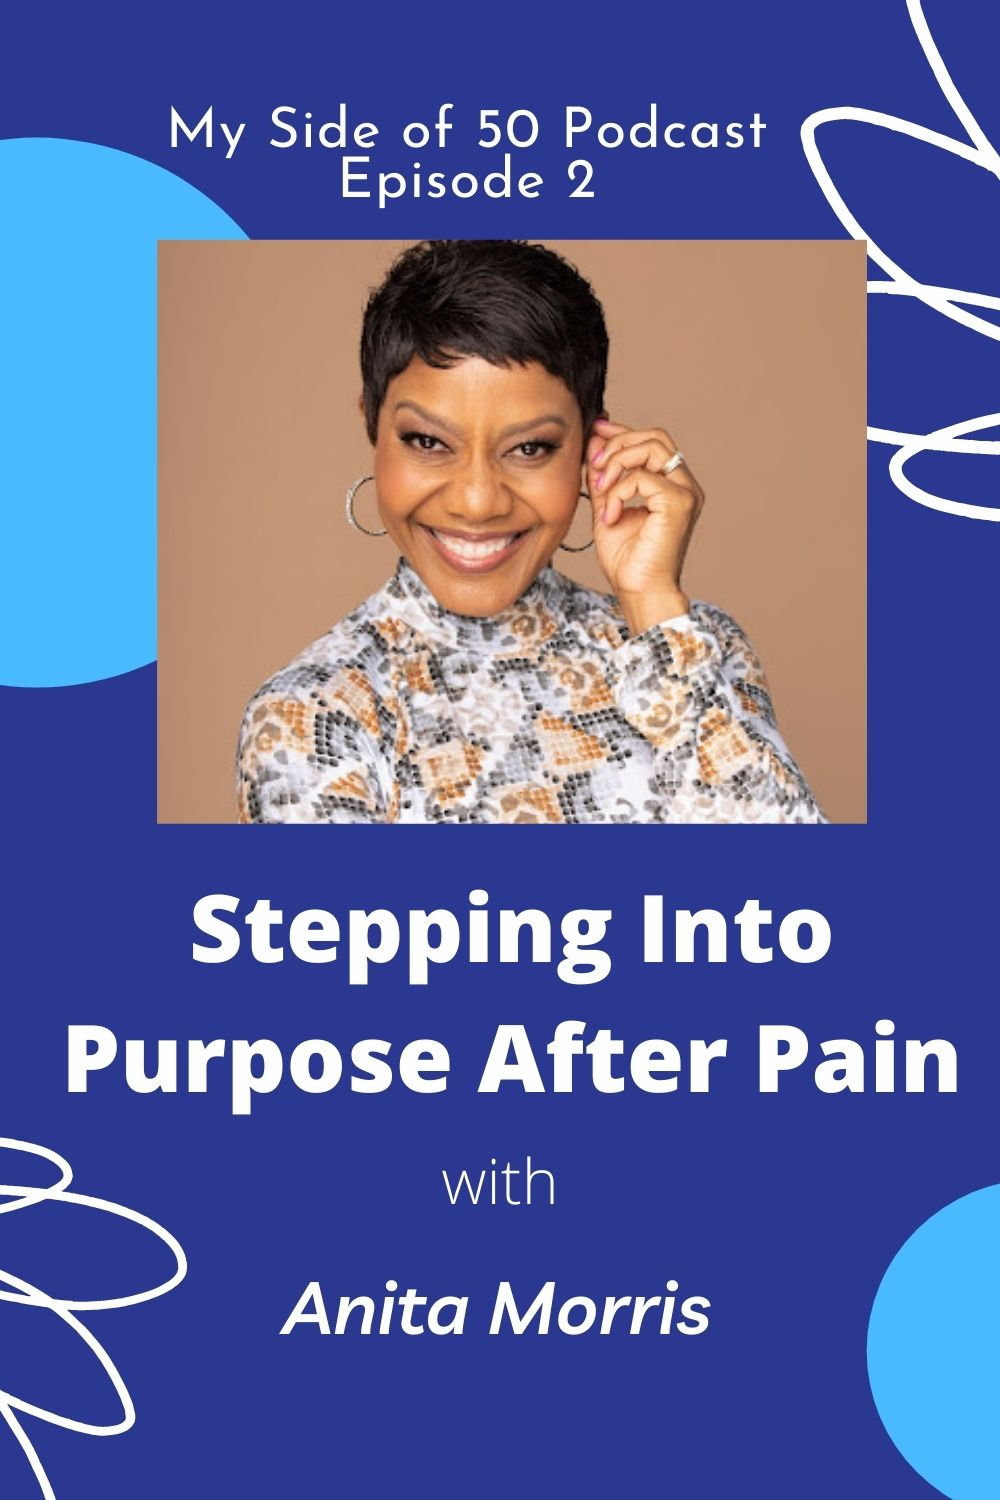 Stepping into Purpose After Pain with Anita Morris